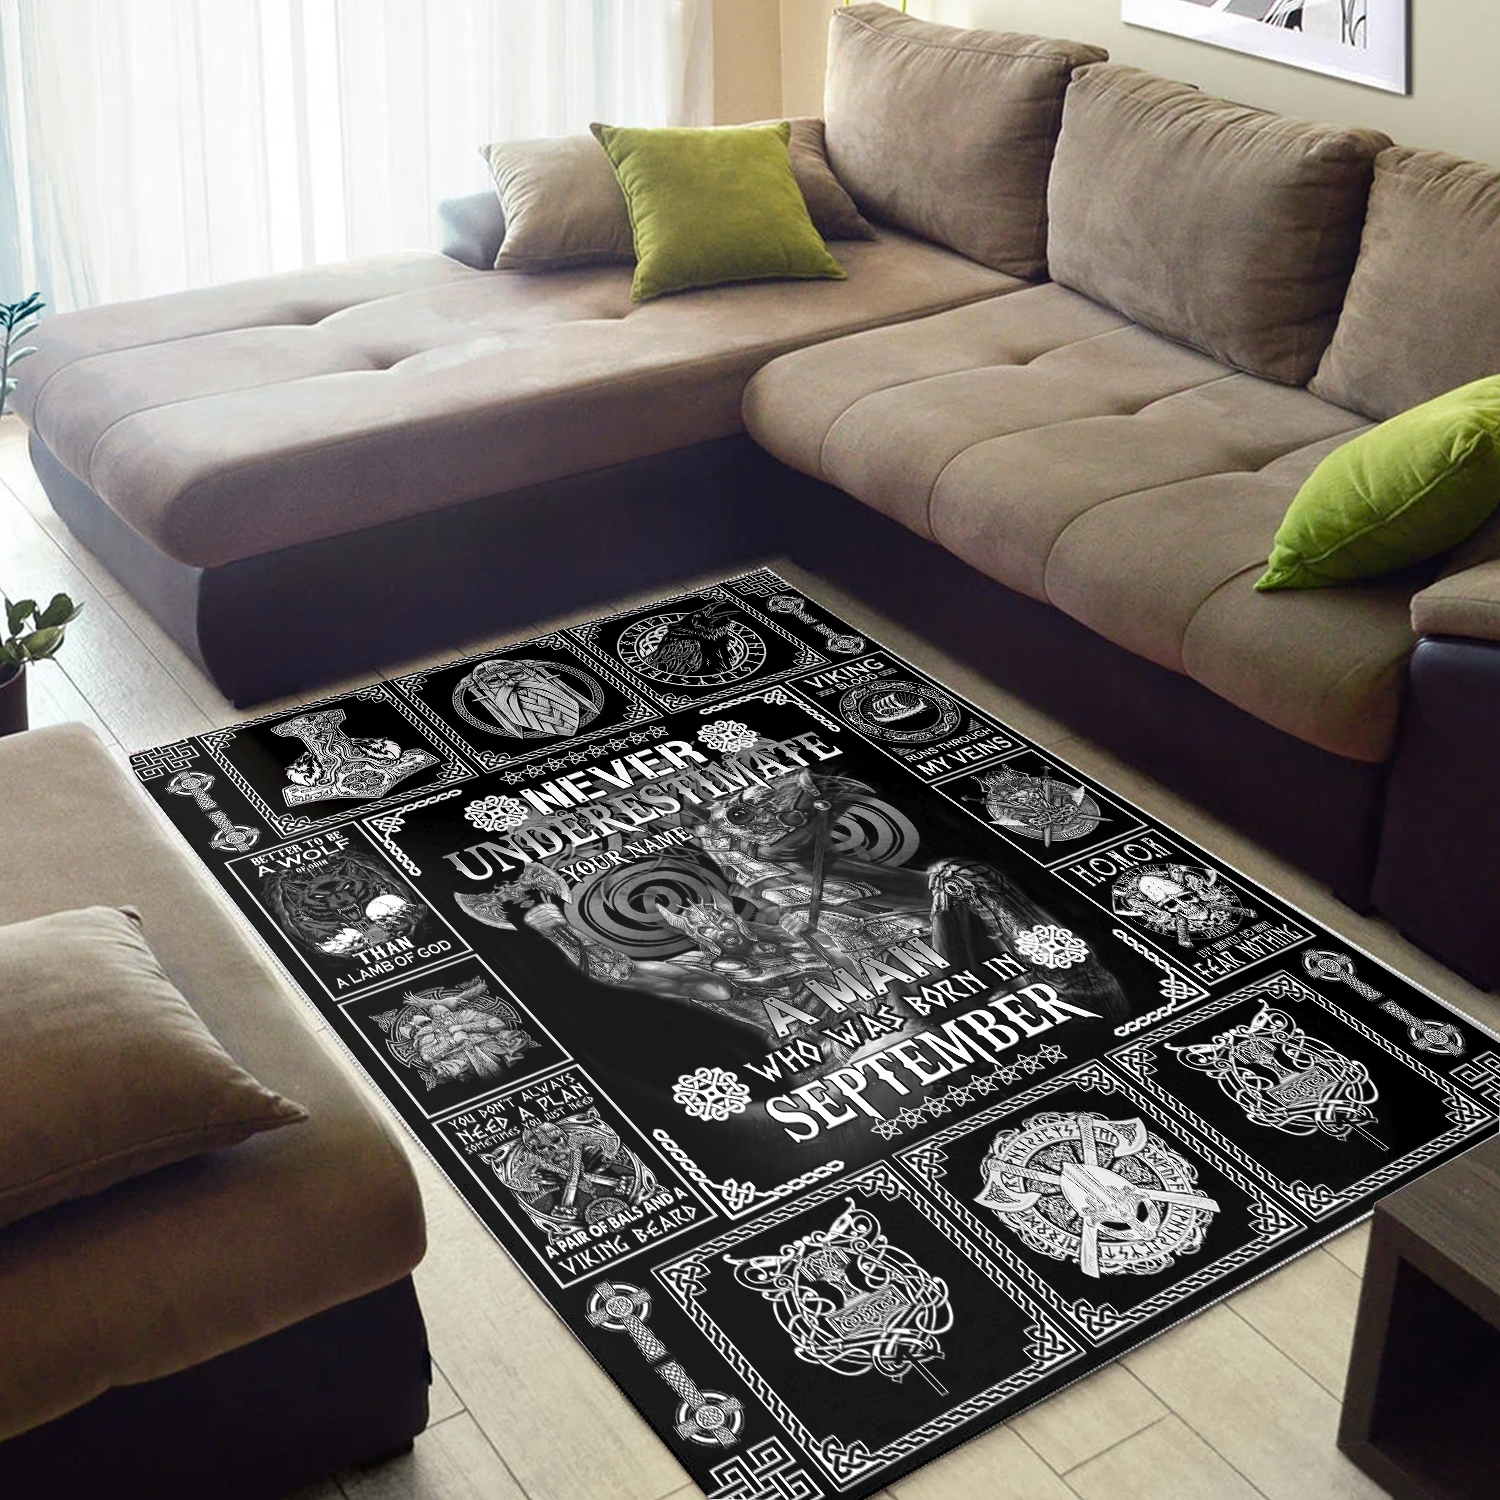 Personalized Never Underestimate A Man Who Was Born In September Pattern 2 Vintage Area Rug Anti-Skid Floor Carpet For Living Room Dinning Room Bedroom Office